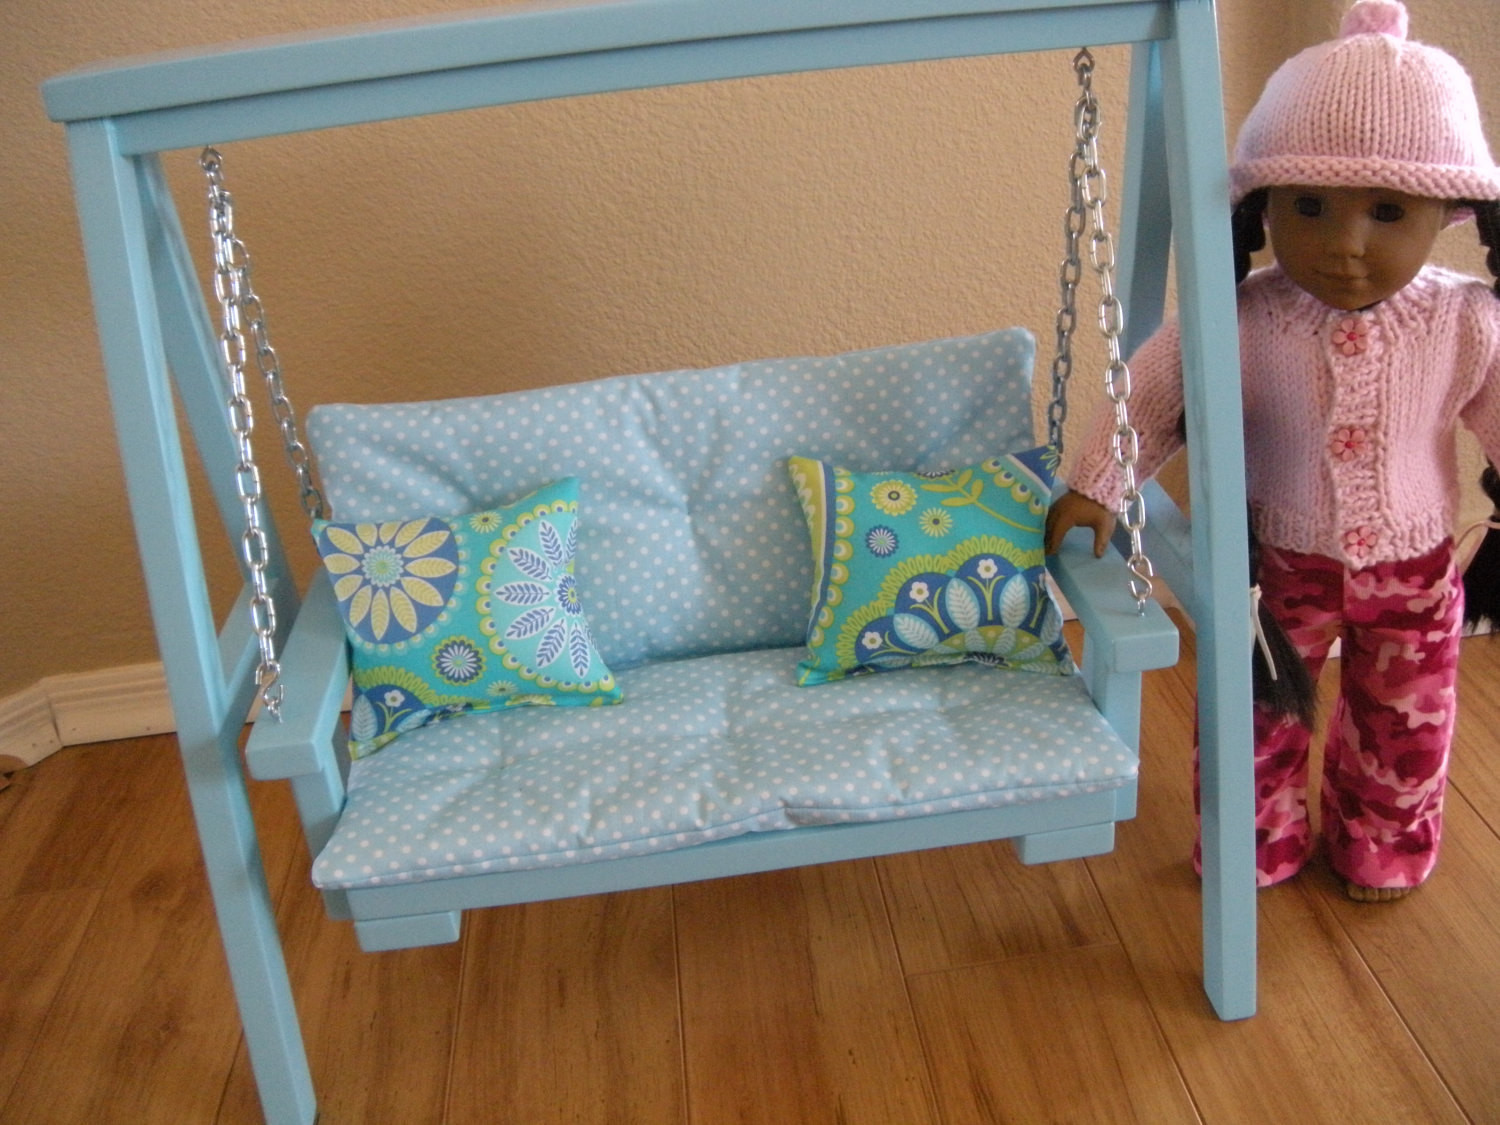 Best ideas about 18 Inch Doll Furniture DIY . Save or Pin AVAILABLE IN FEBRUARY Doll Swing Set with Cushion & Throw Now.